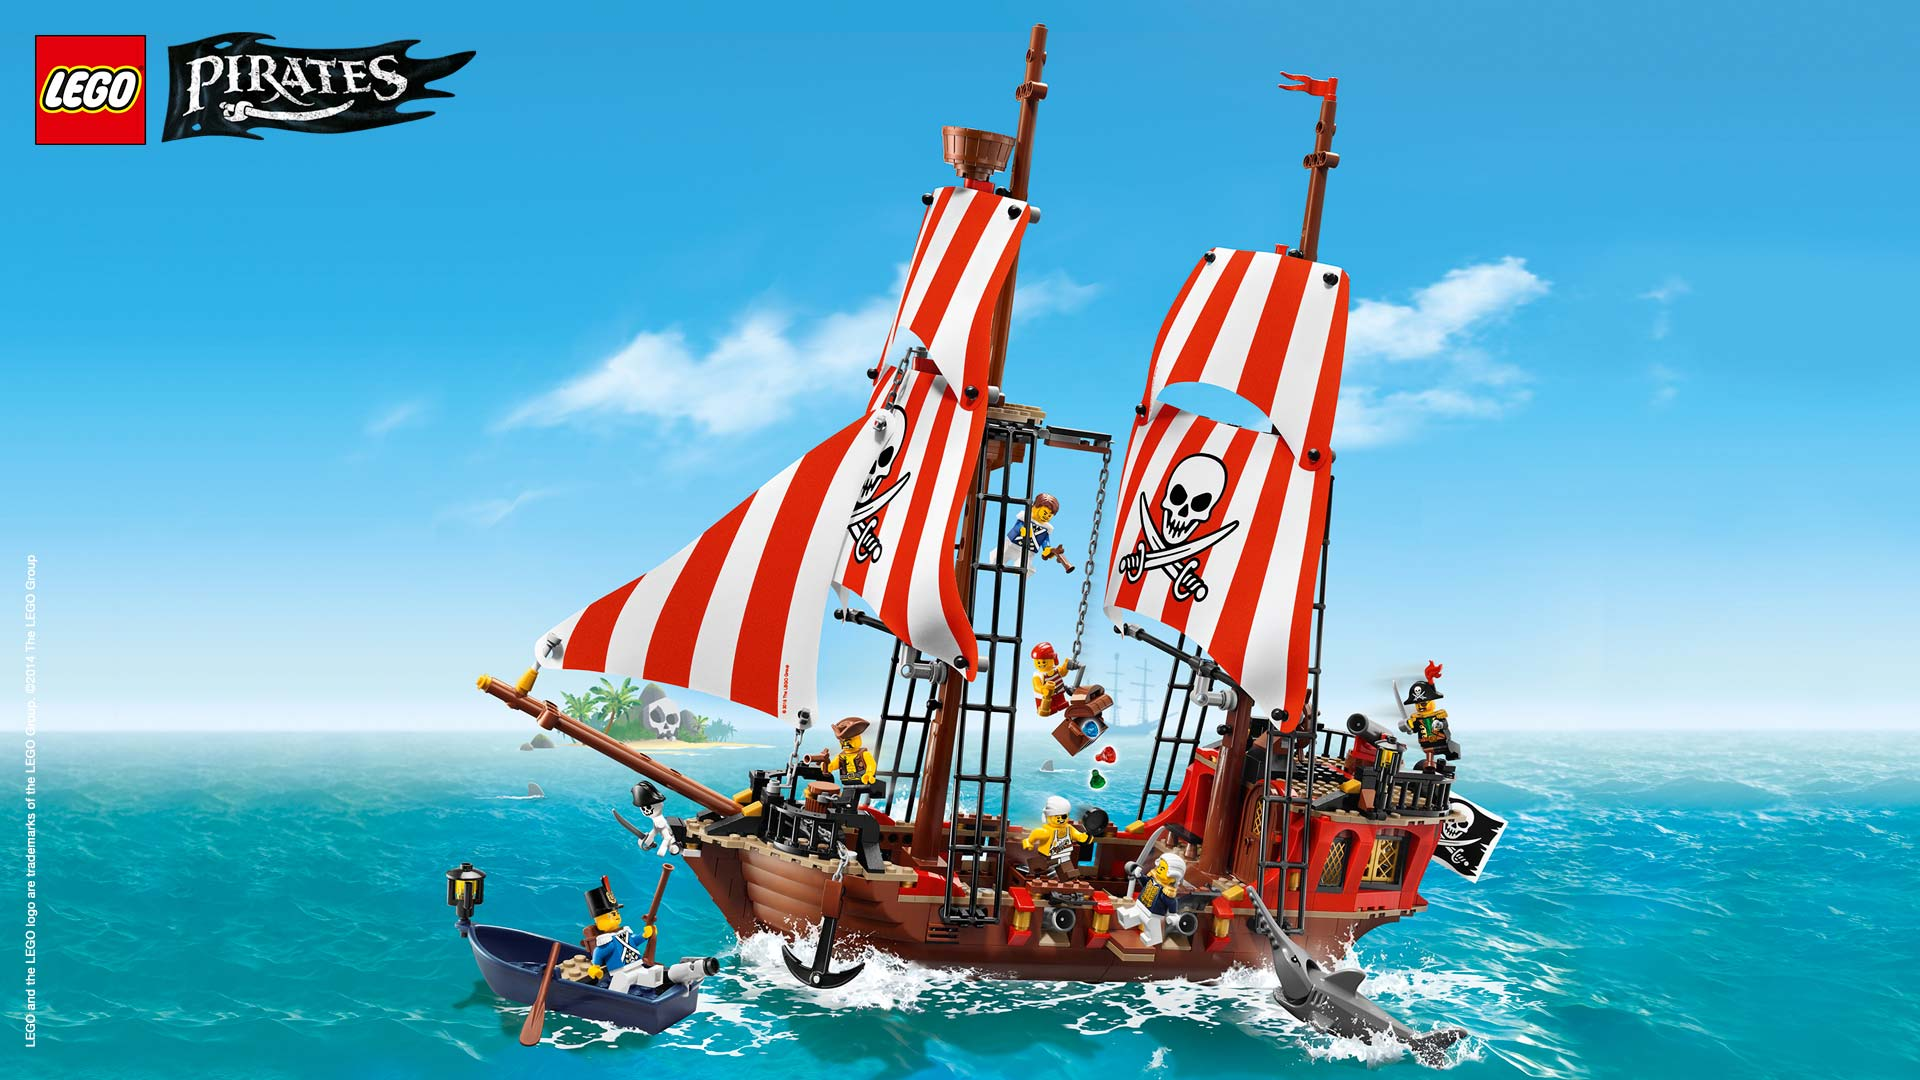 Pirate ship wallpaper   Wallpaper   Activities   LEGO Pirates   LEGO 1920x1080